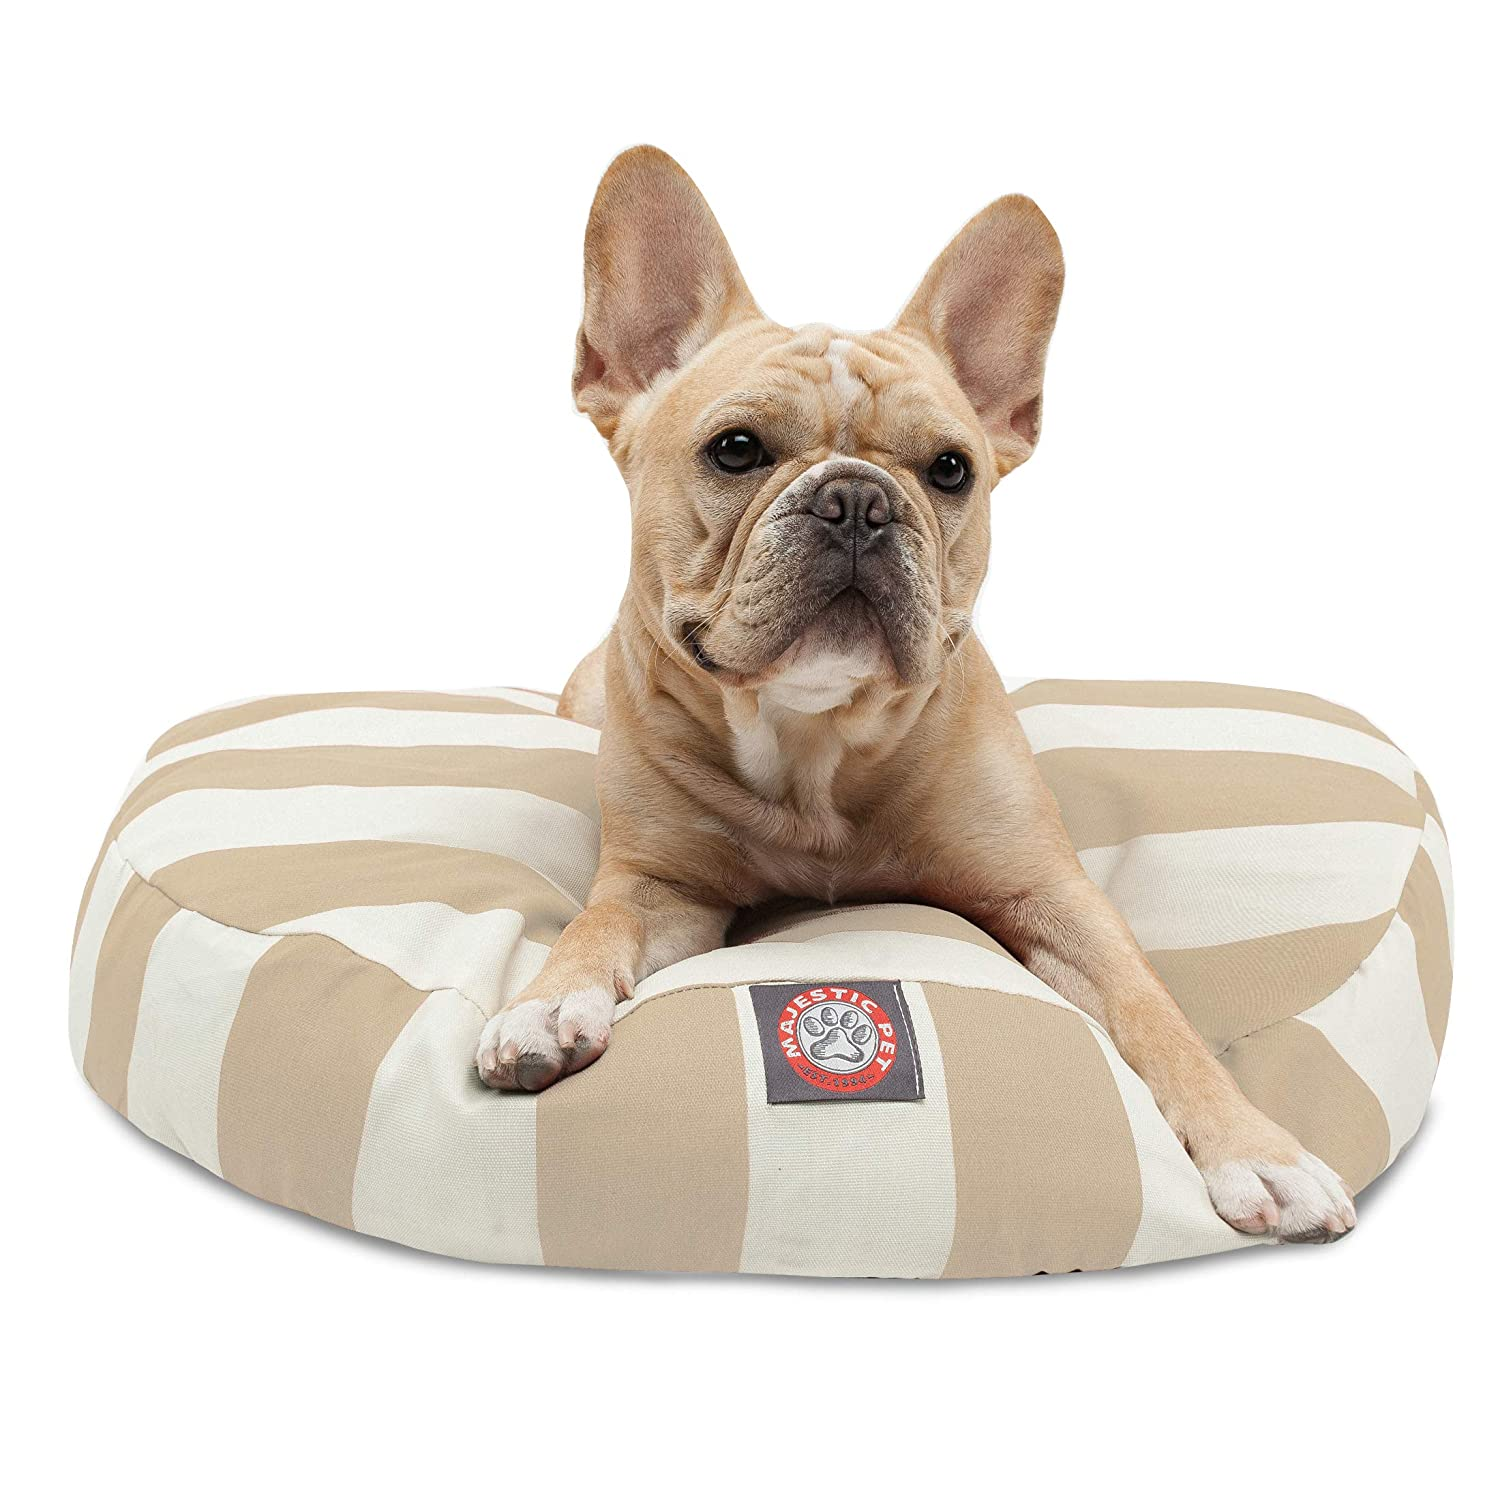 Majestic Pet greenical Stripe Sand Small Round Pet Bed